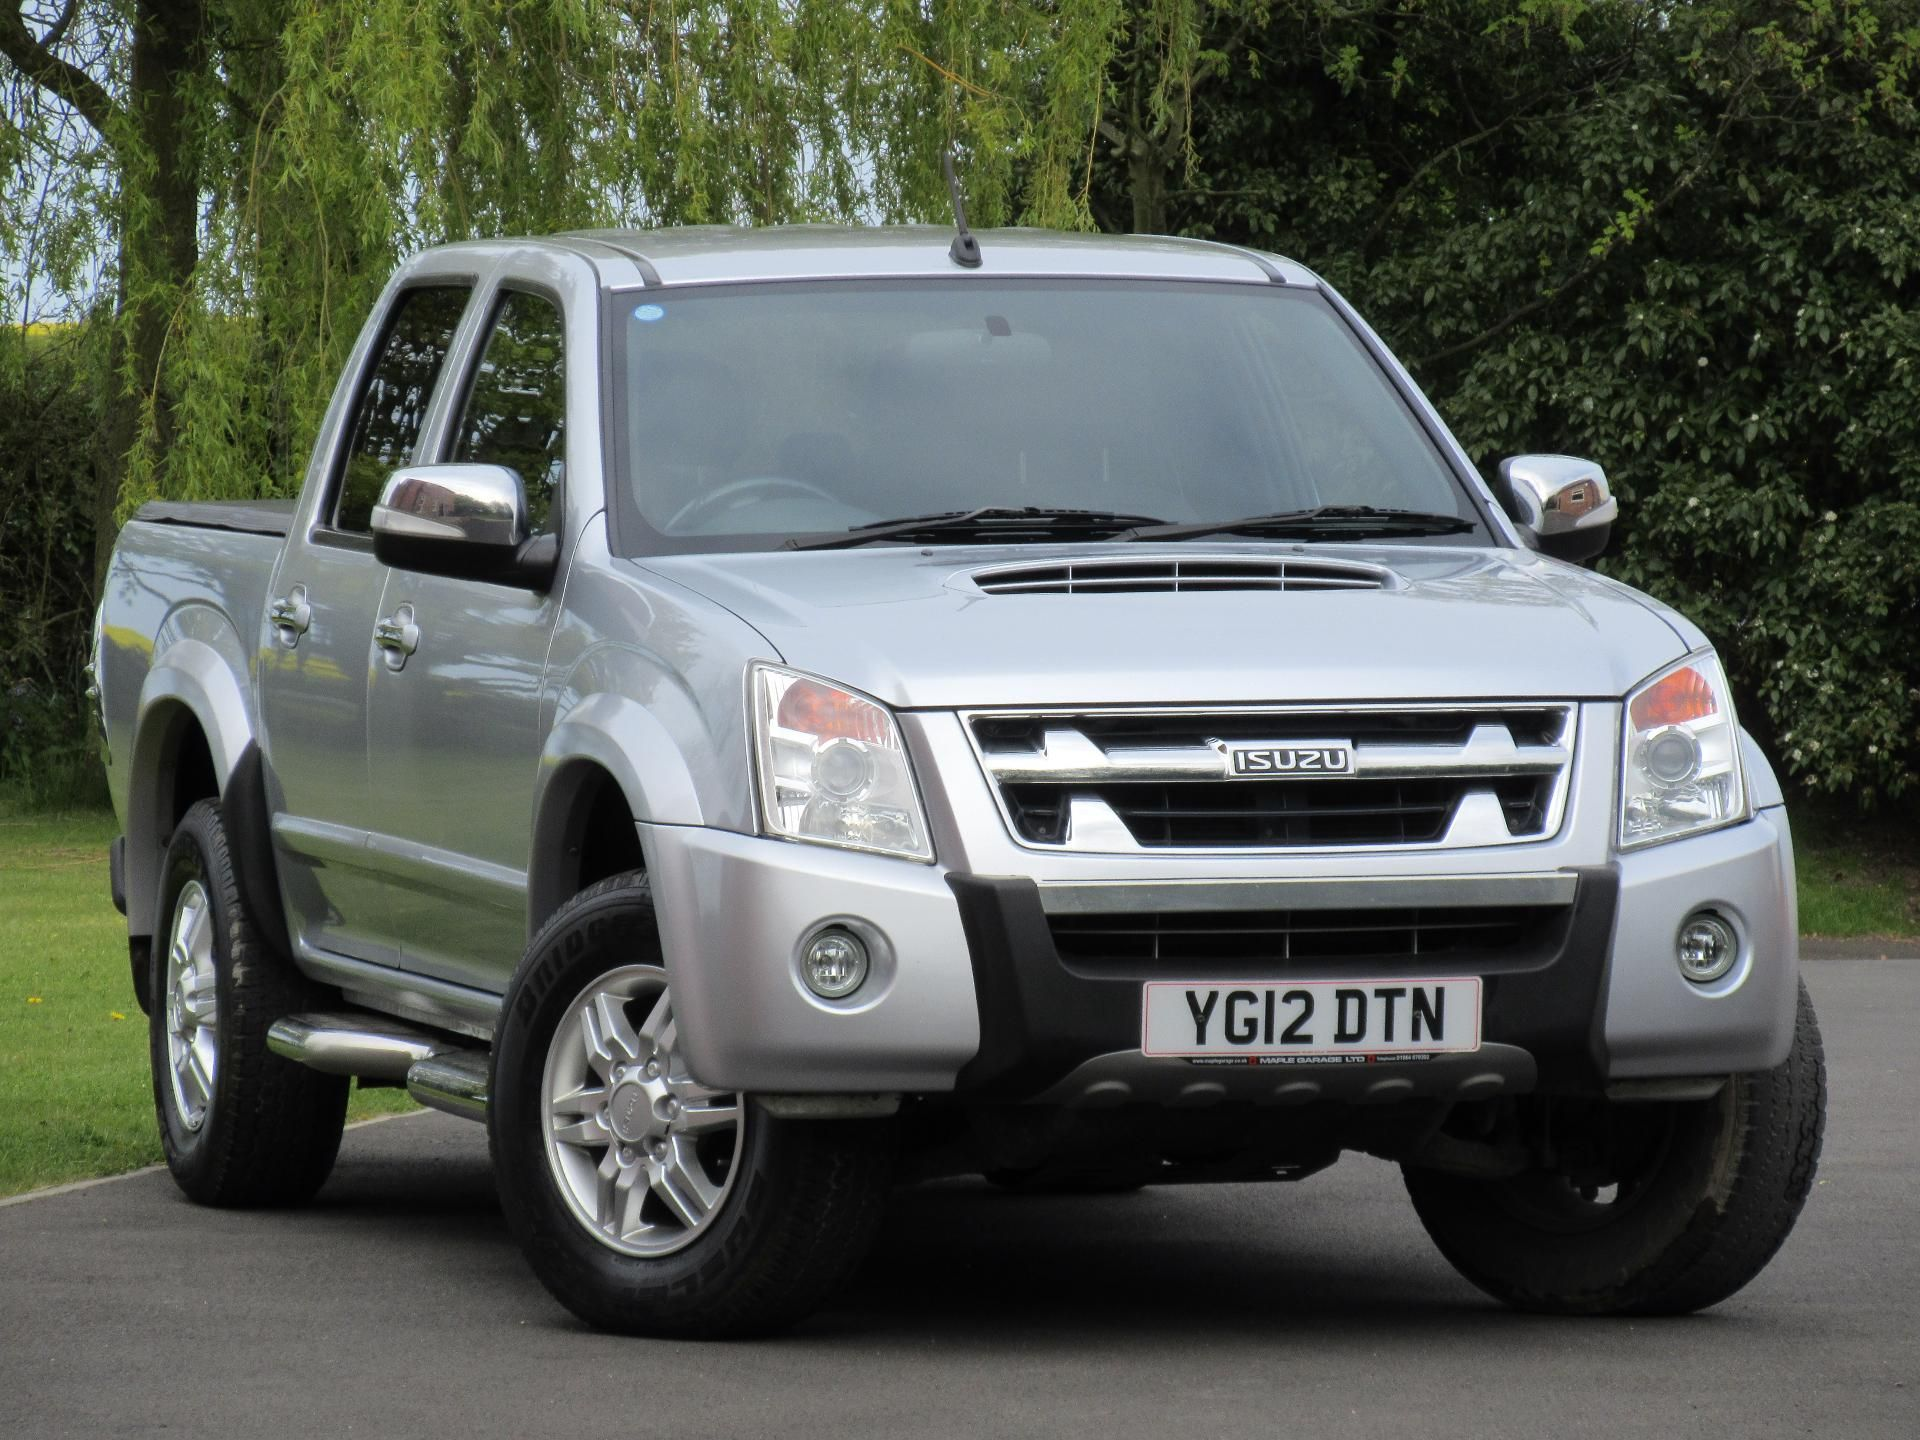 Isuzu Rodeo Denver 3.0 LS (UK) #Rodeodenver